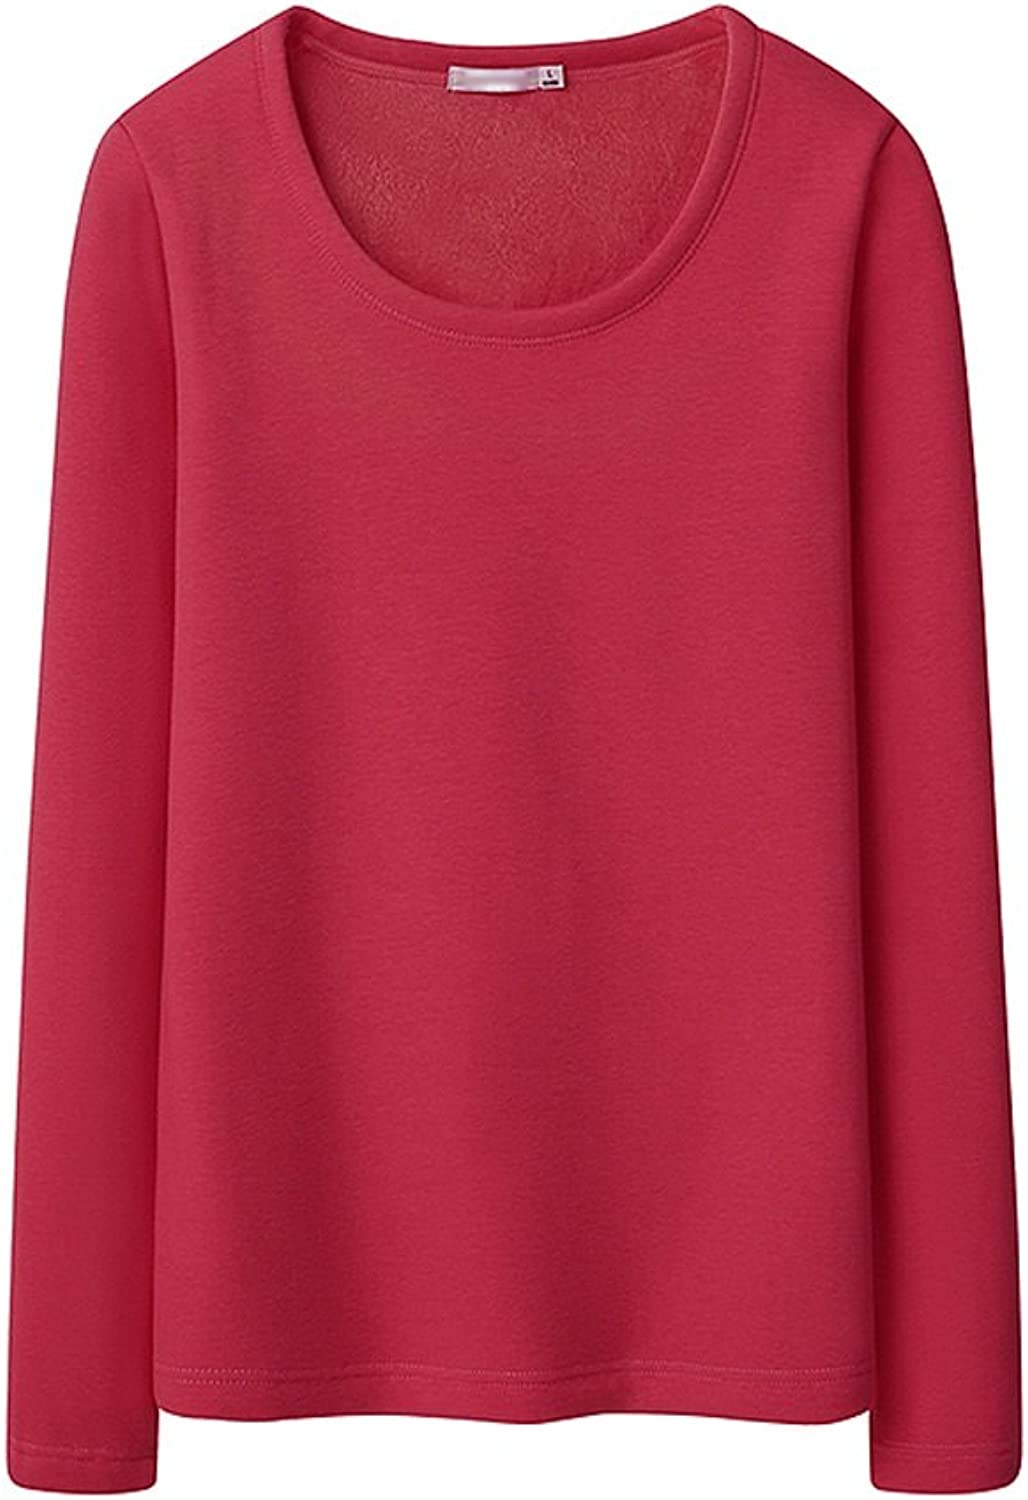 Dress Thickened women's winter blouse Slim warm longsleeved Tshirt ( color   A , Size   L )